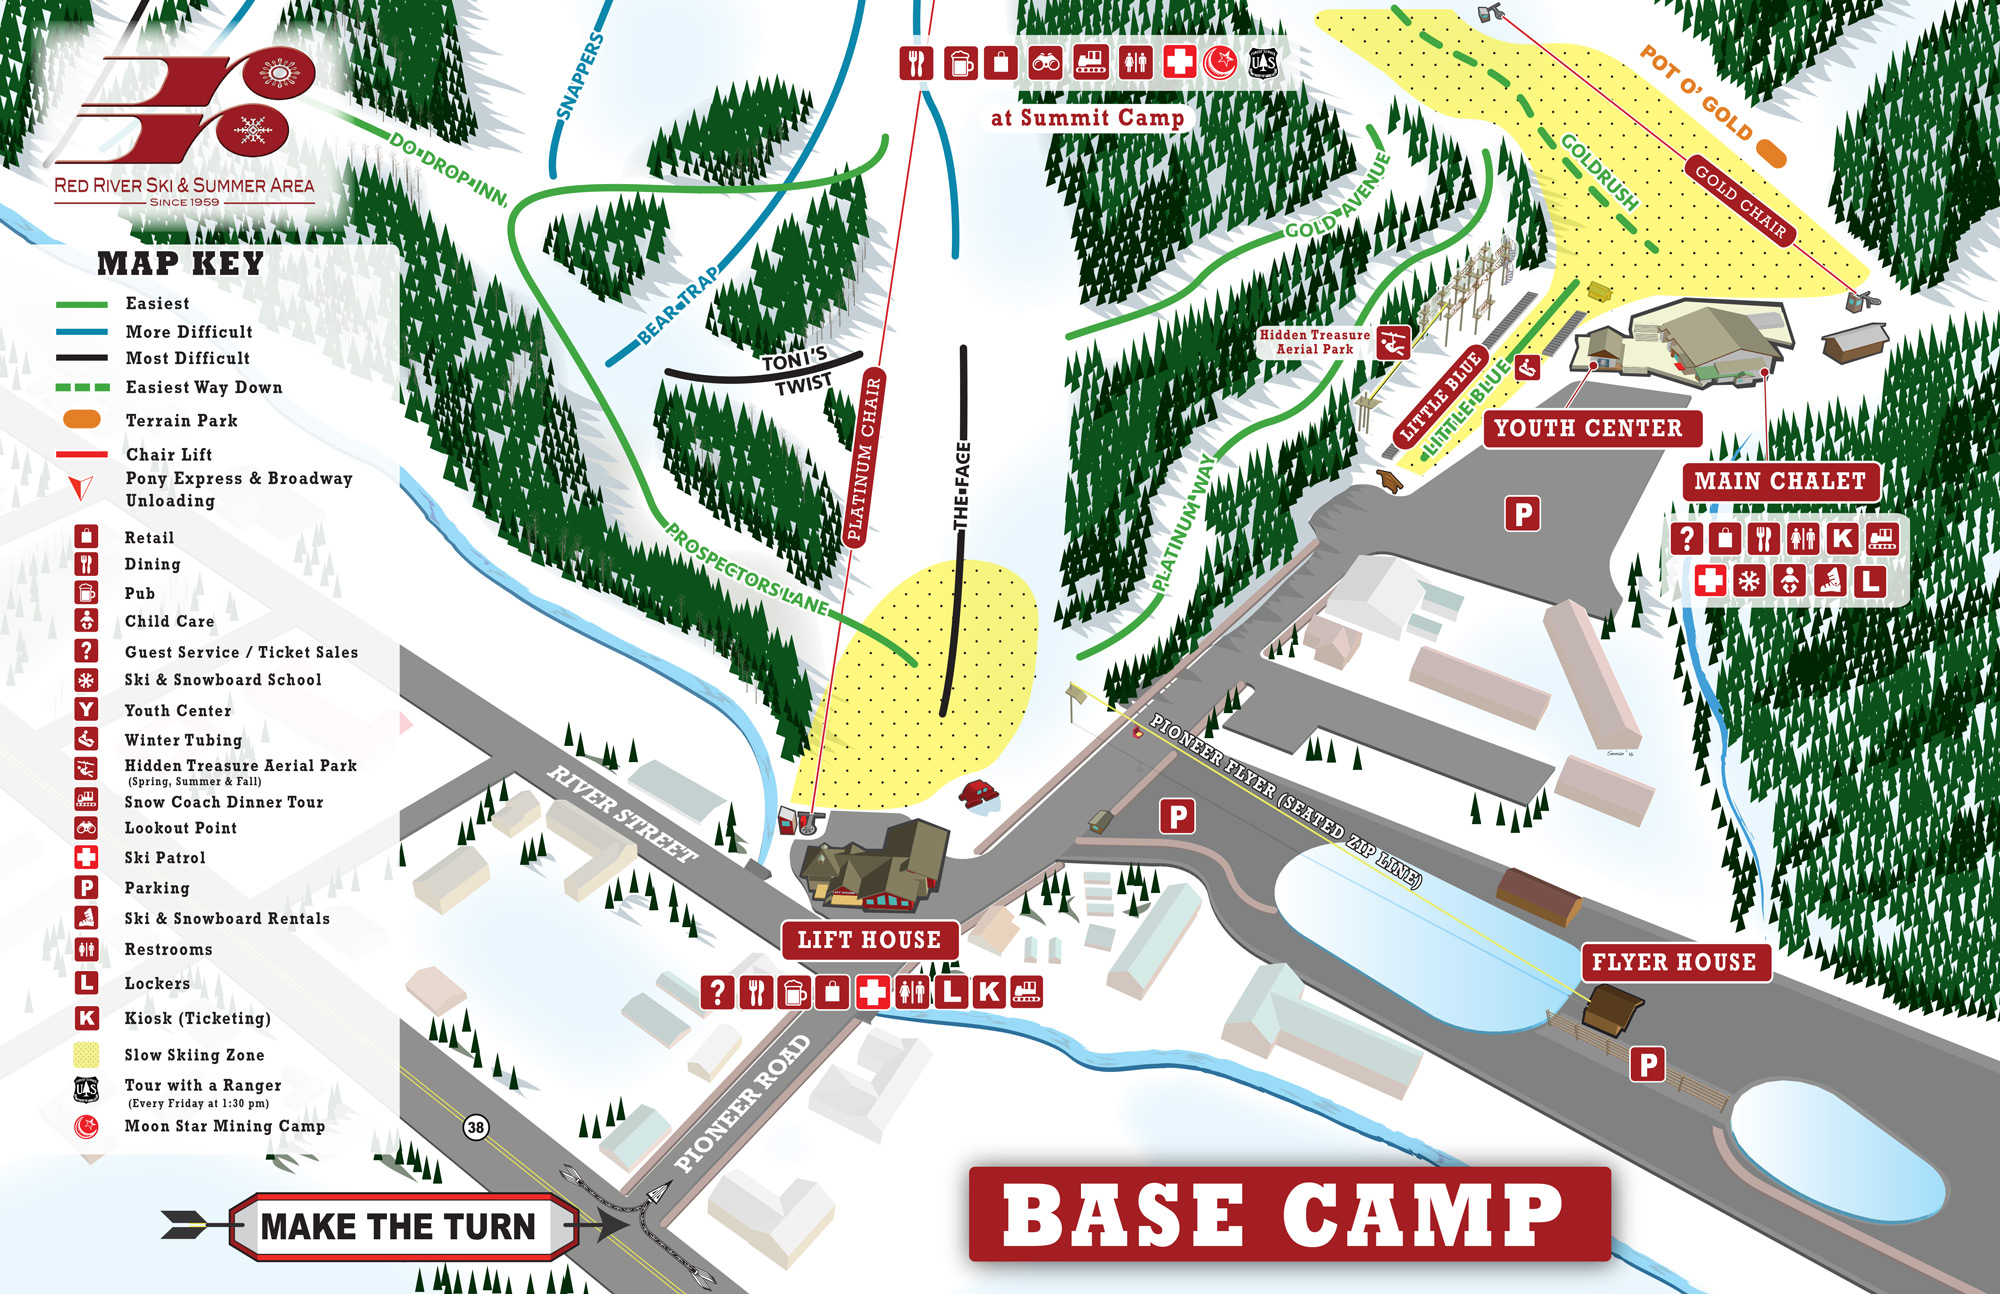 Red River basecamp trail map